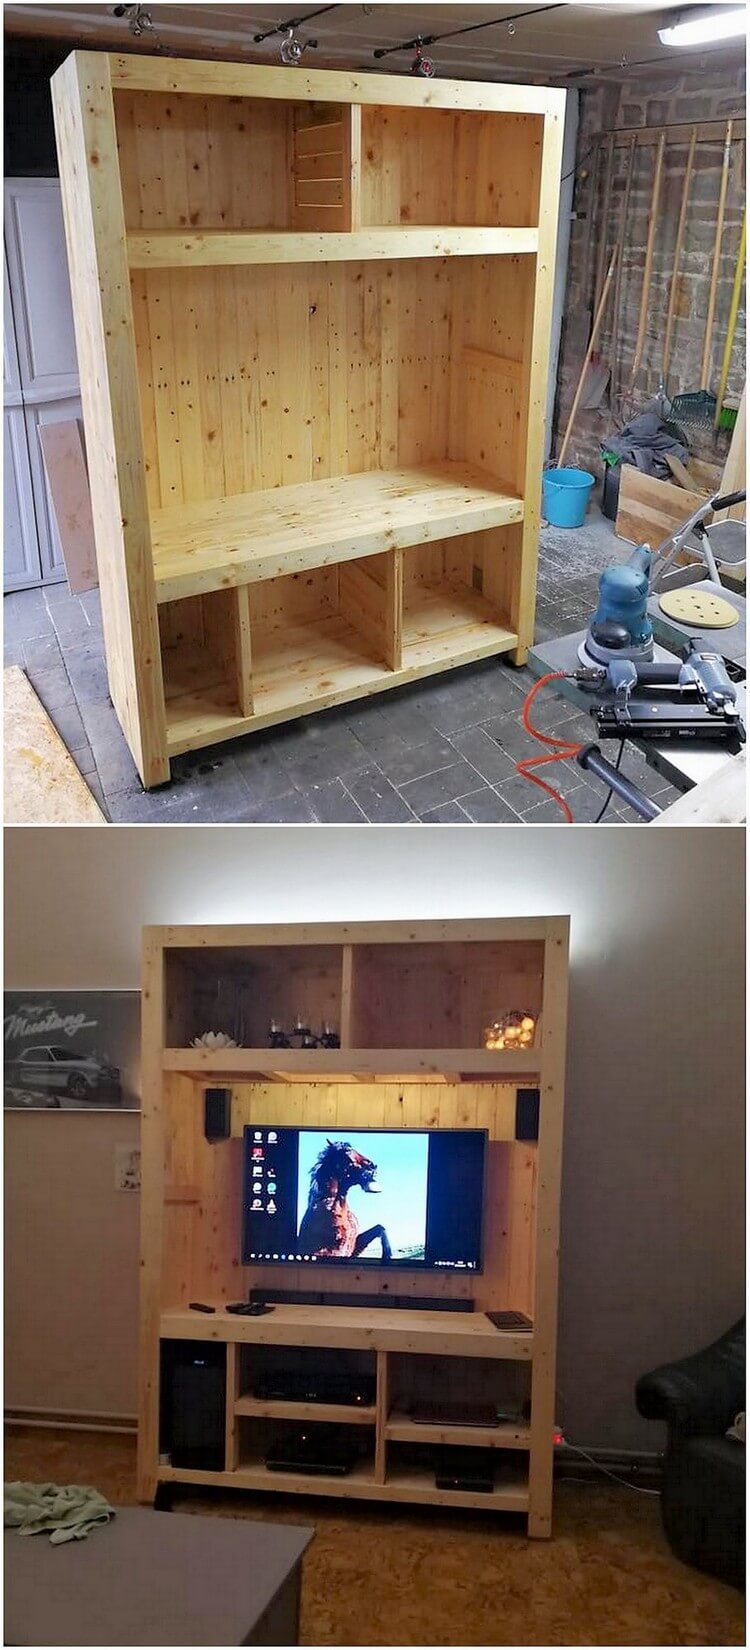 Pallet Cupboard with LED Holder